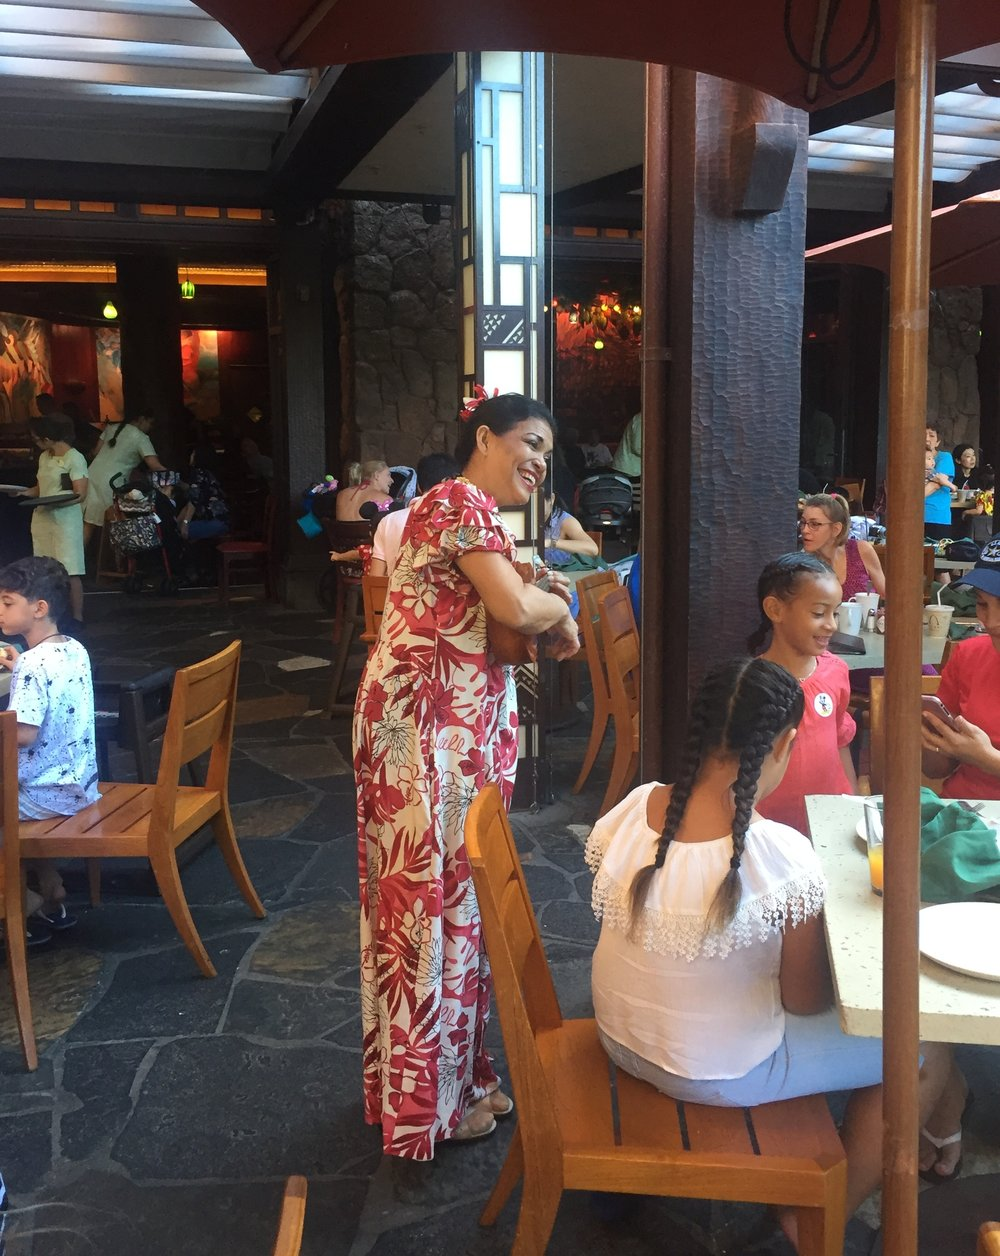 Aunty performing throughout the restaurant.